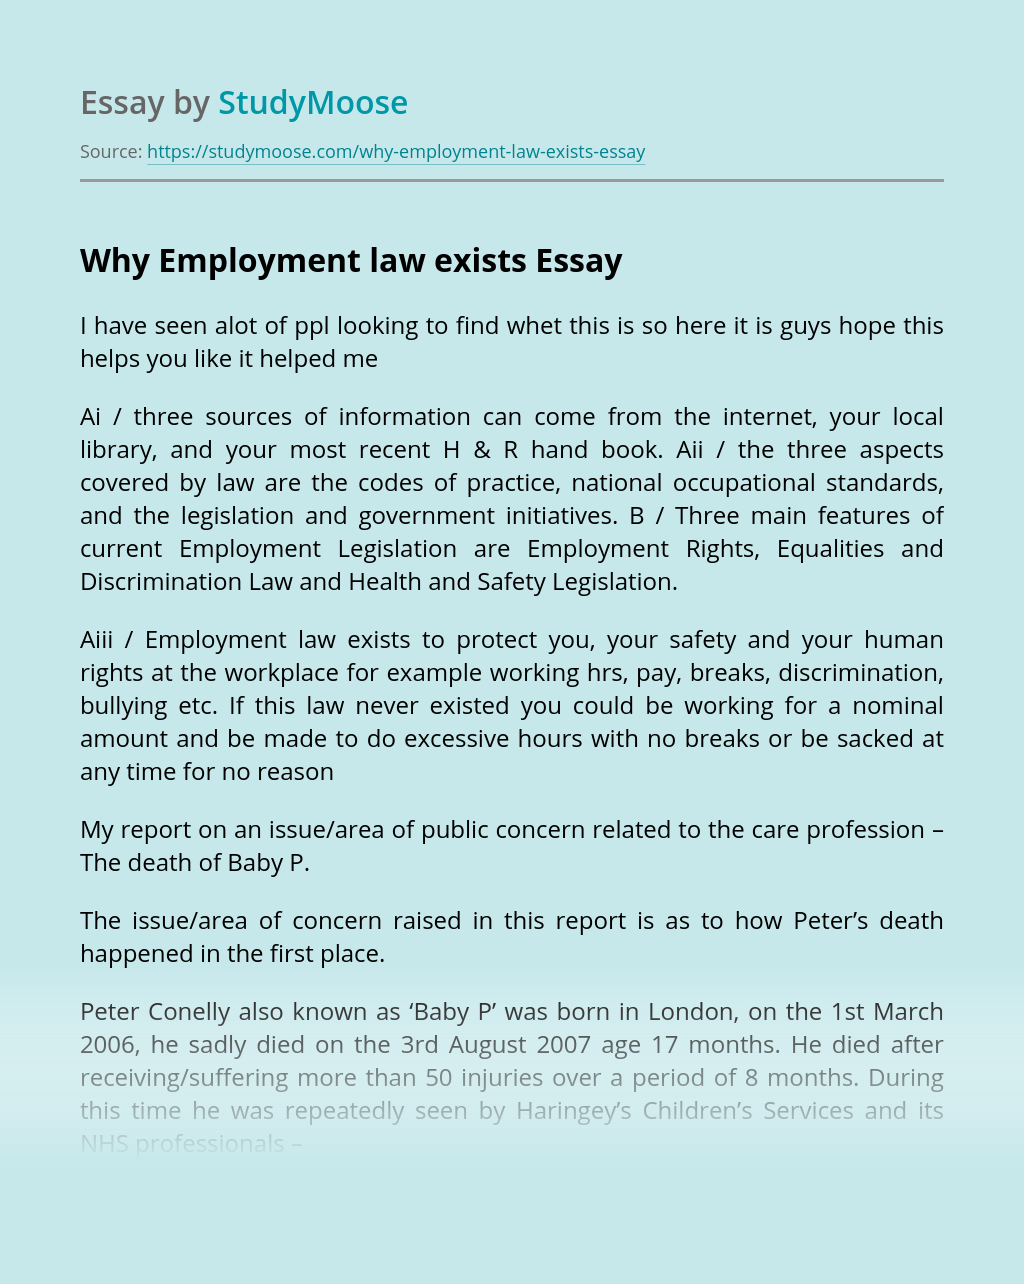 Why Employment law exists